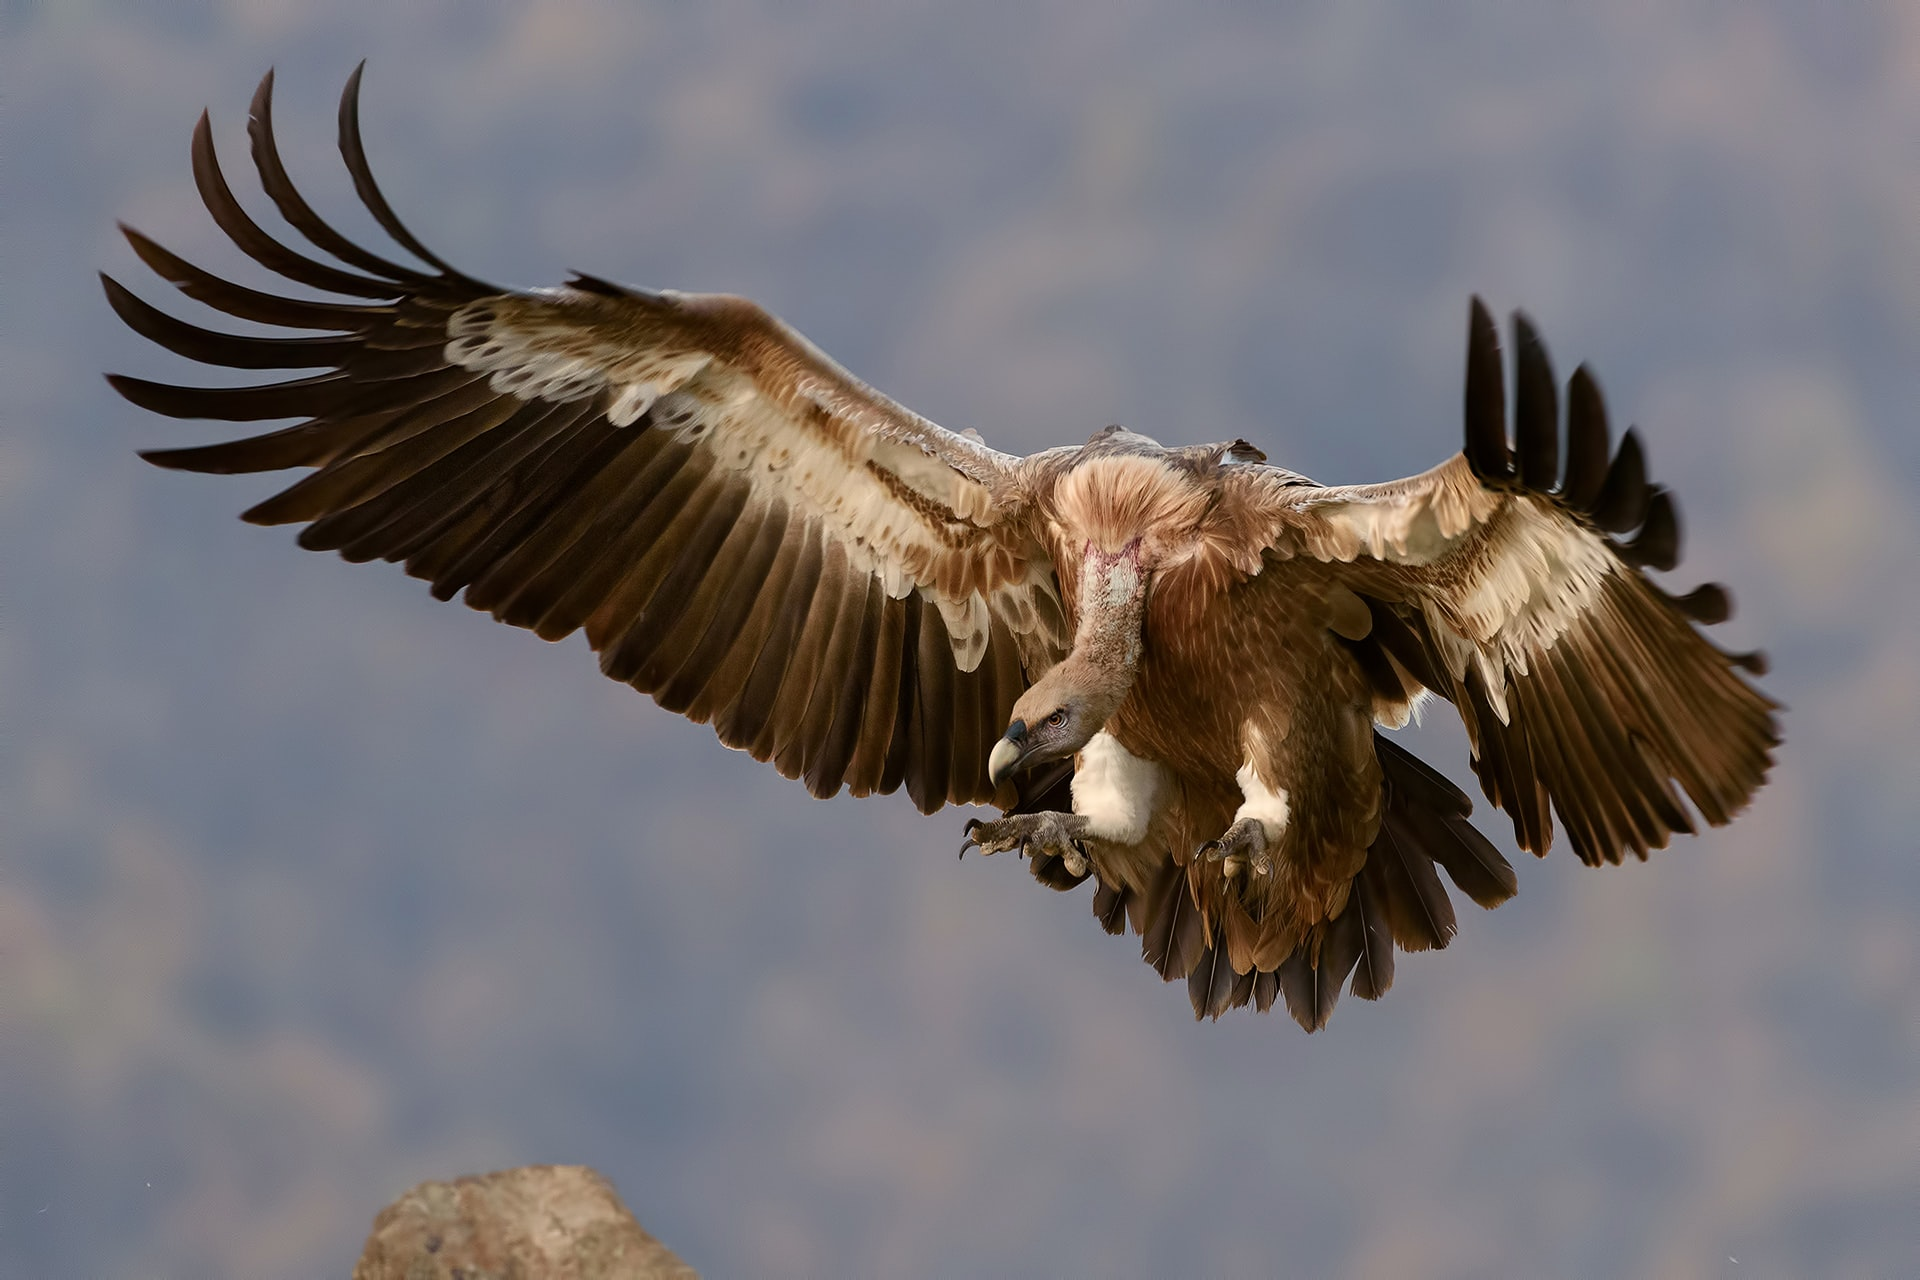 brown vulture flying during daytime